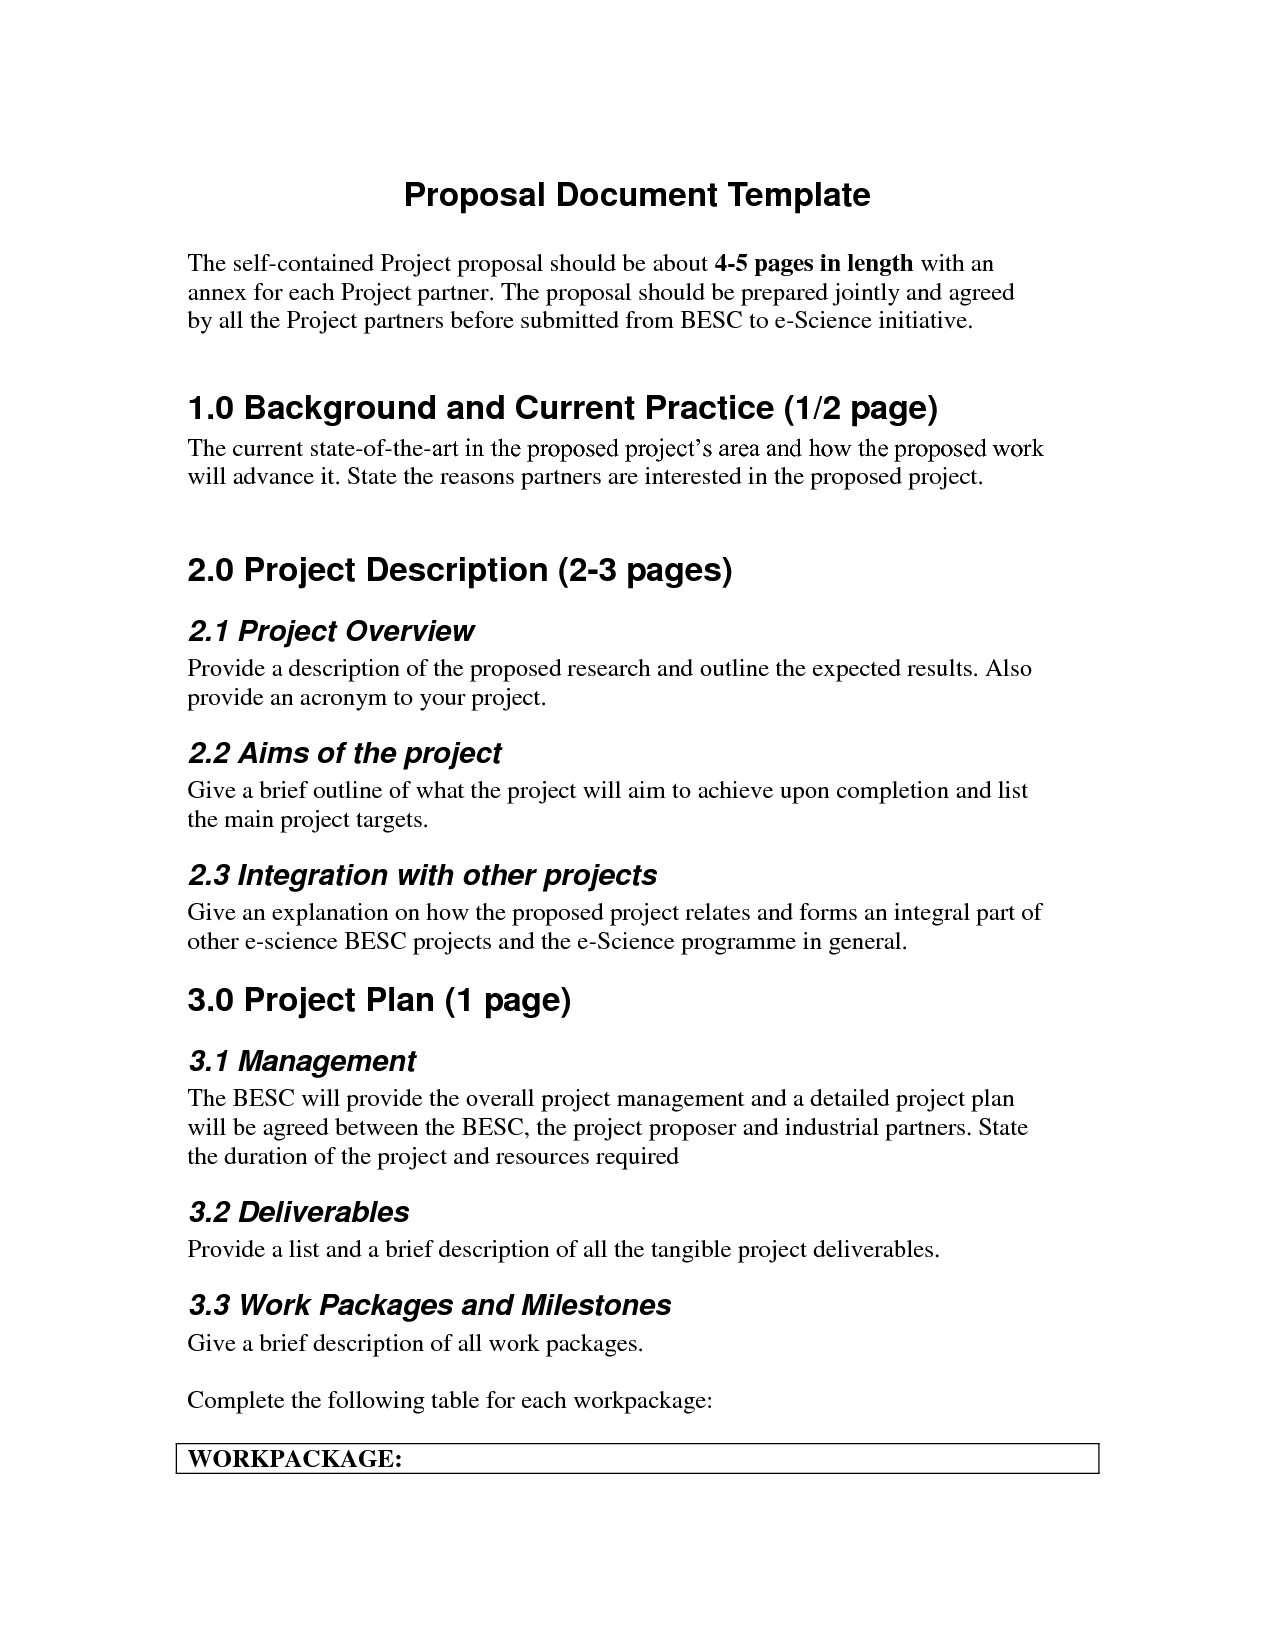 essay proposal template proposal essay topics before students essay proposal template proposal essay topics before students write a college research paper